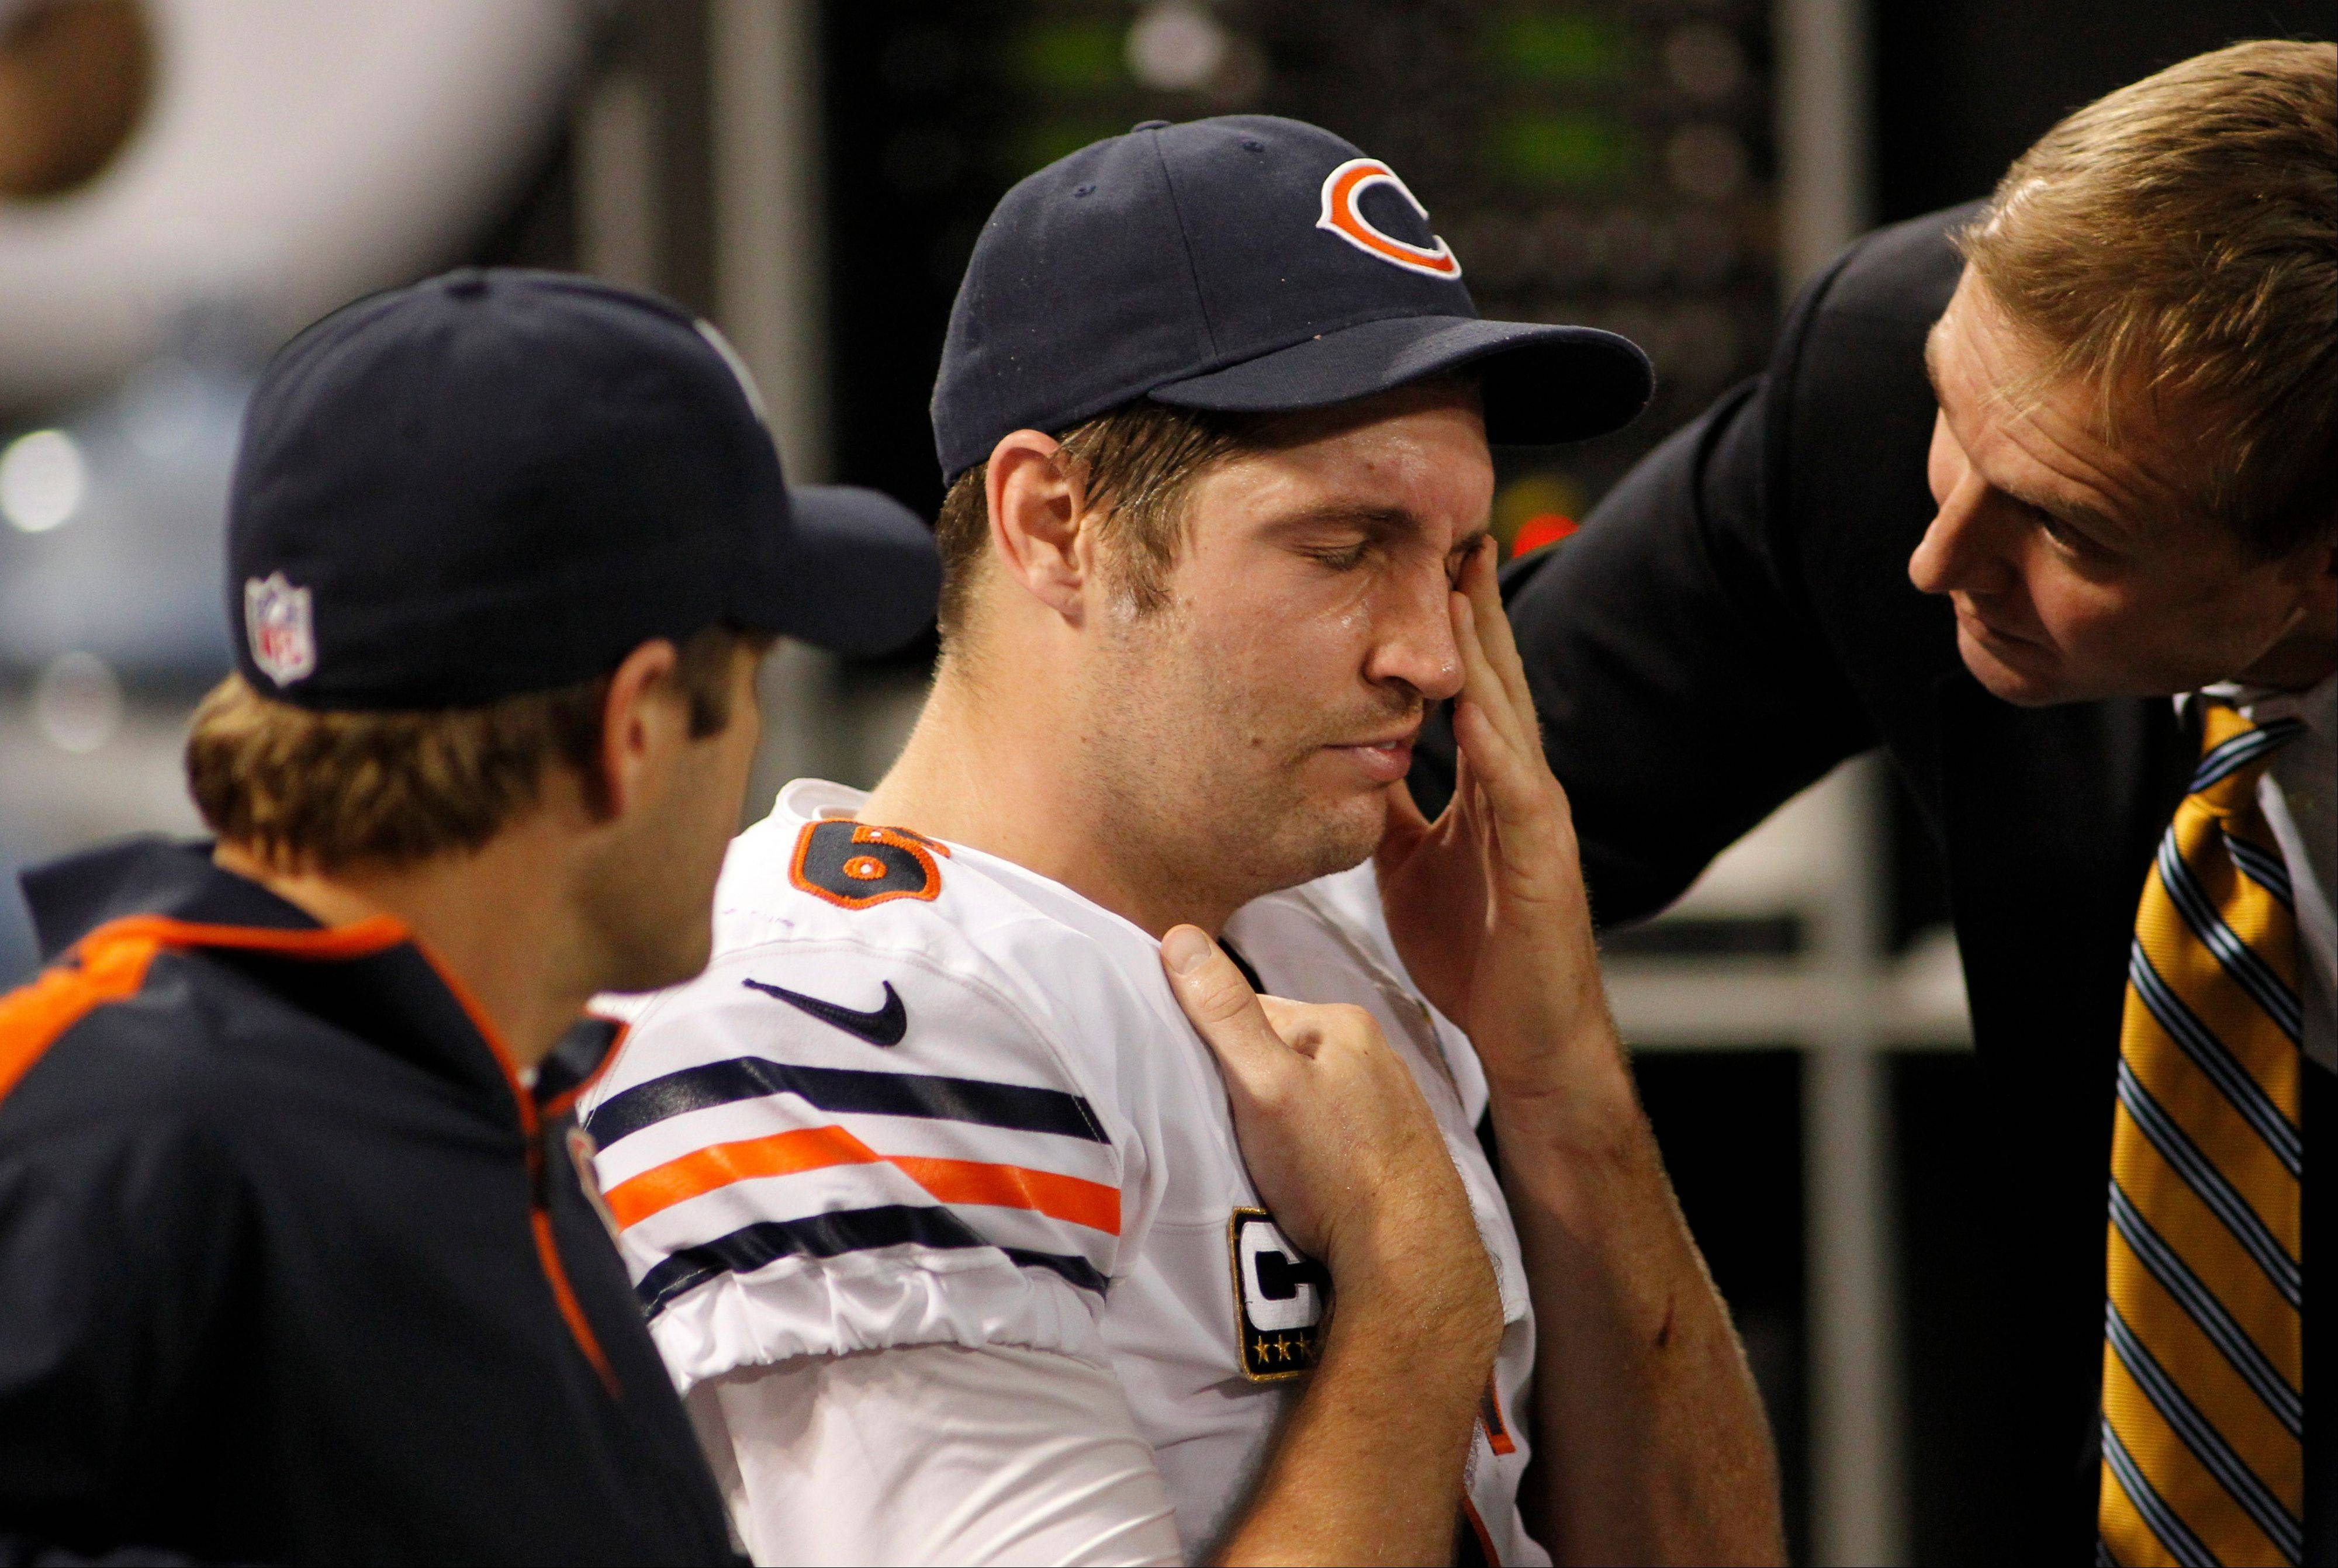 Bears quarterback Jay Cutler, center, watches the end of Sunday's game from the bench after taking a hit to the head in the Bears' loss to Minnesota.